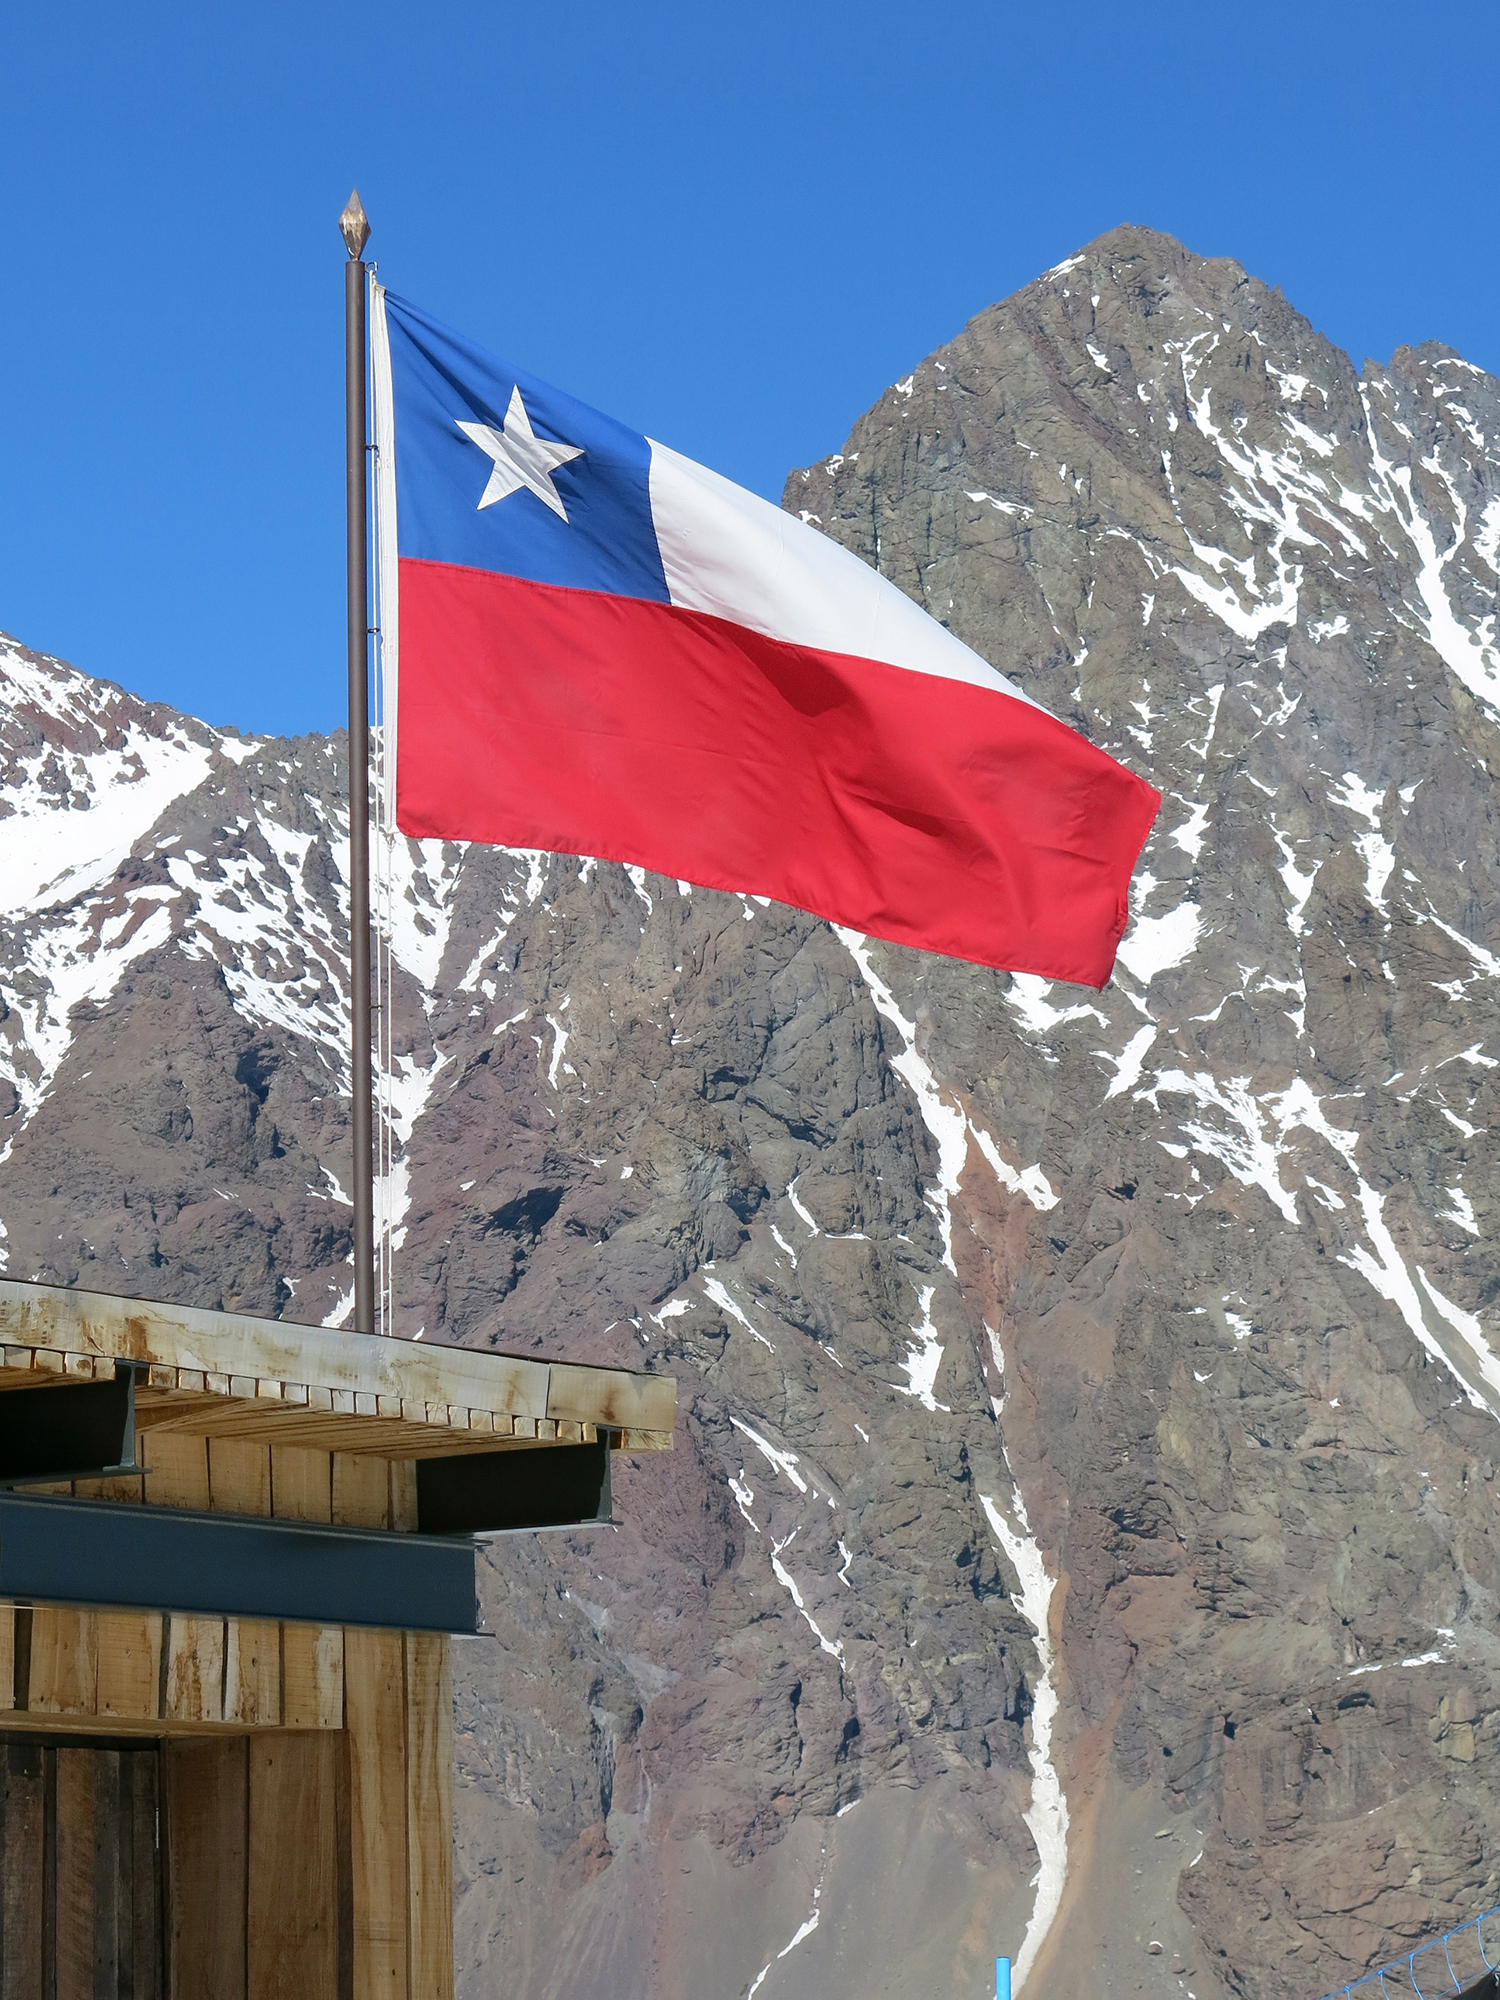 Portillo, Chile will host Leadership in the Fall Line 2017. With skiing in the beautiful Andes Mountains and world class leadership training, this premium program will affect you both personally and professionally.